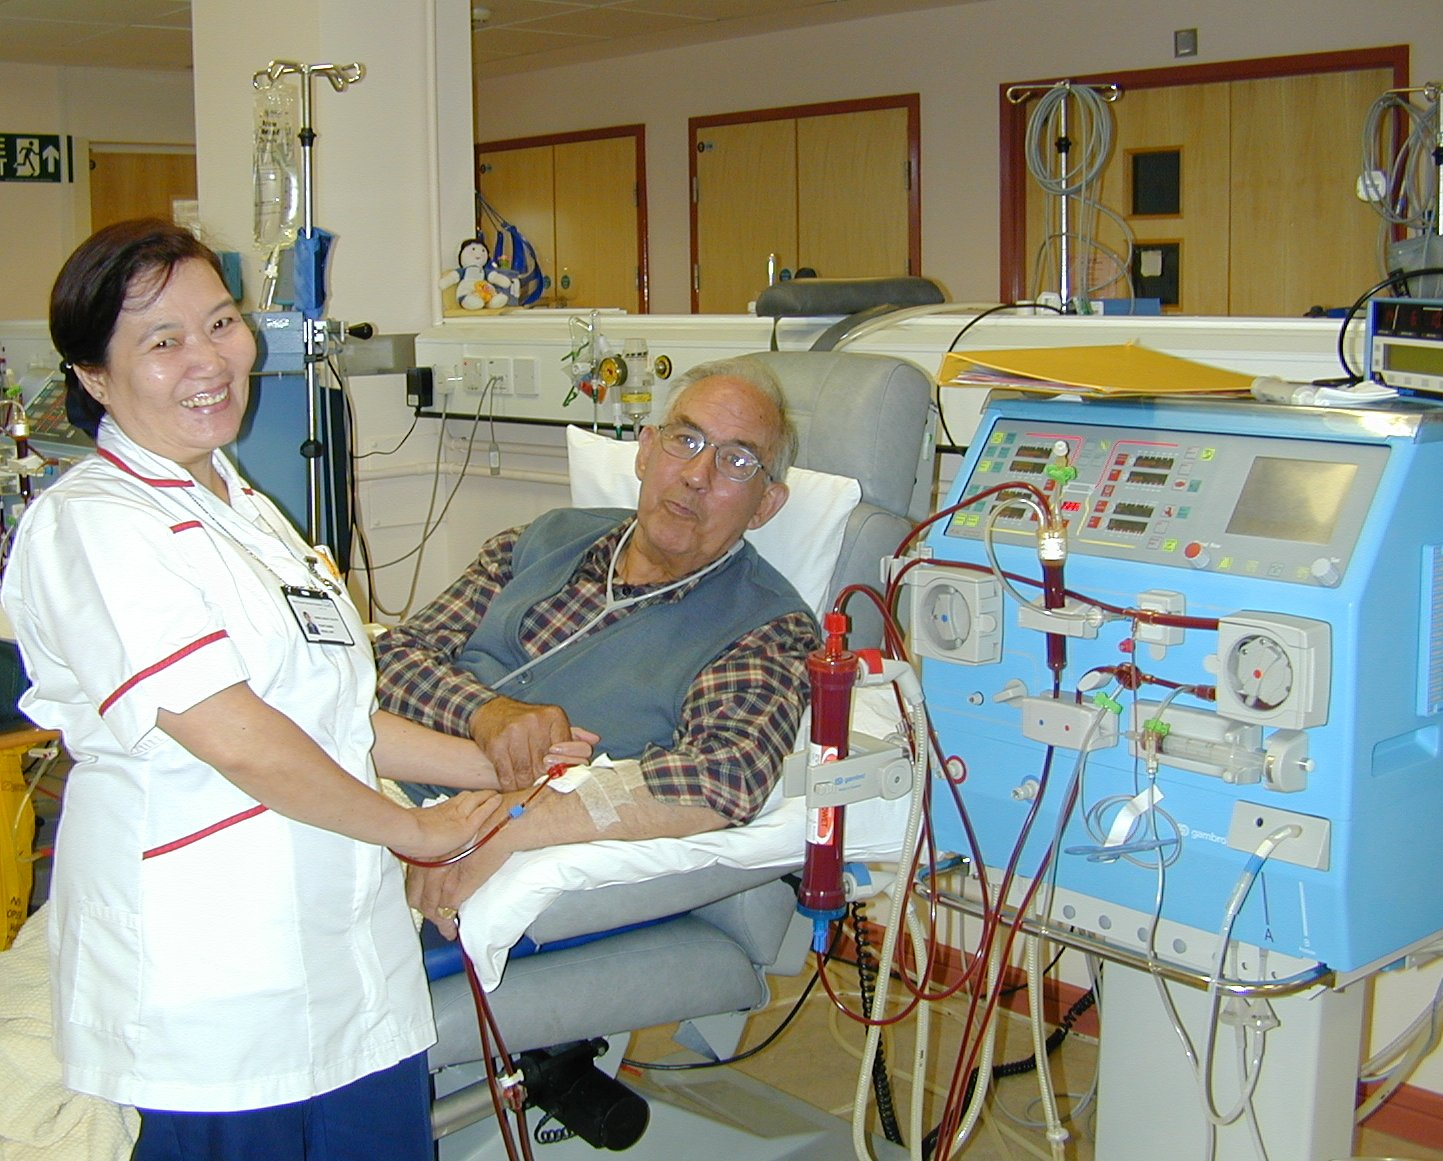 dialysis   Medical Pictures Info - Health Definitions Photos